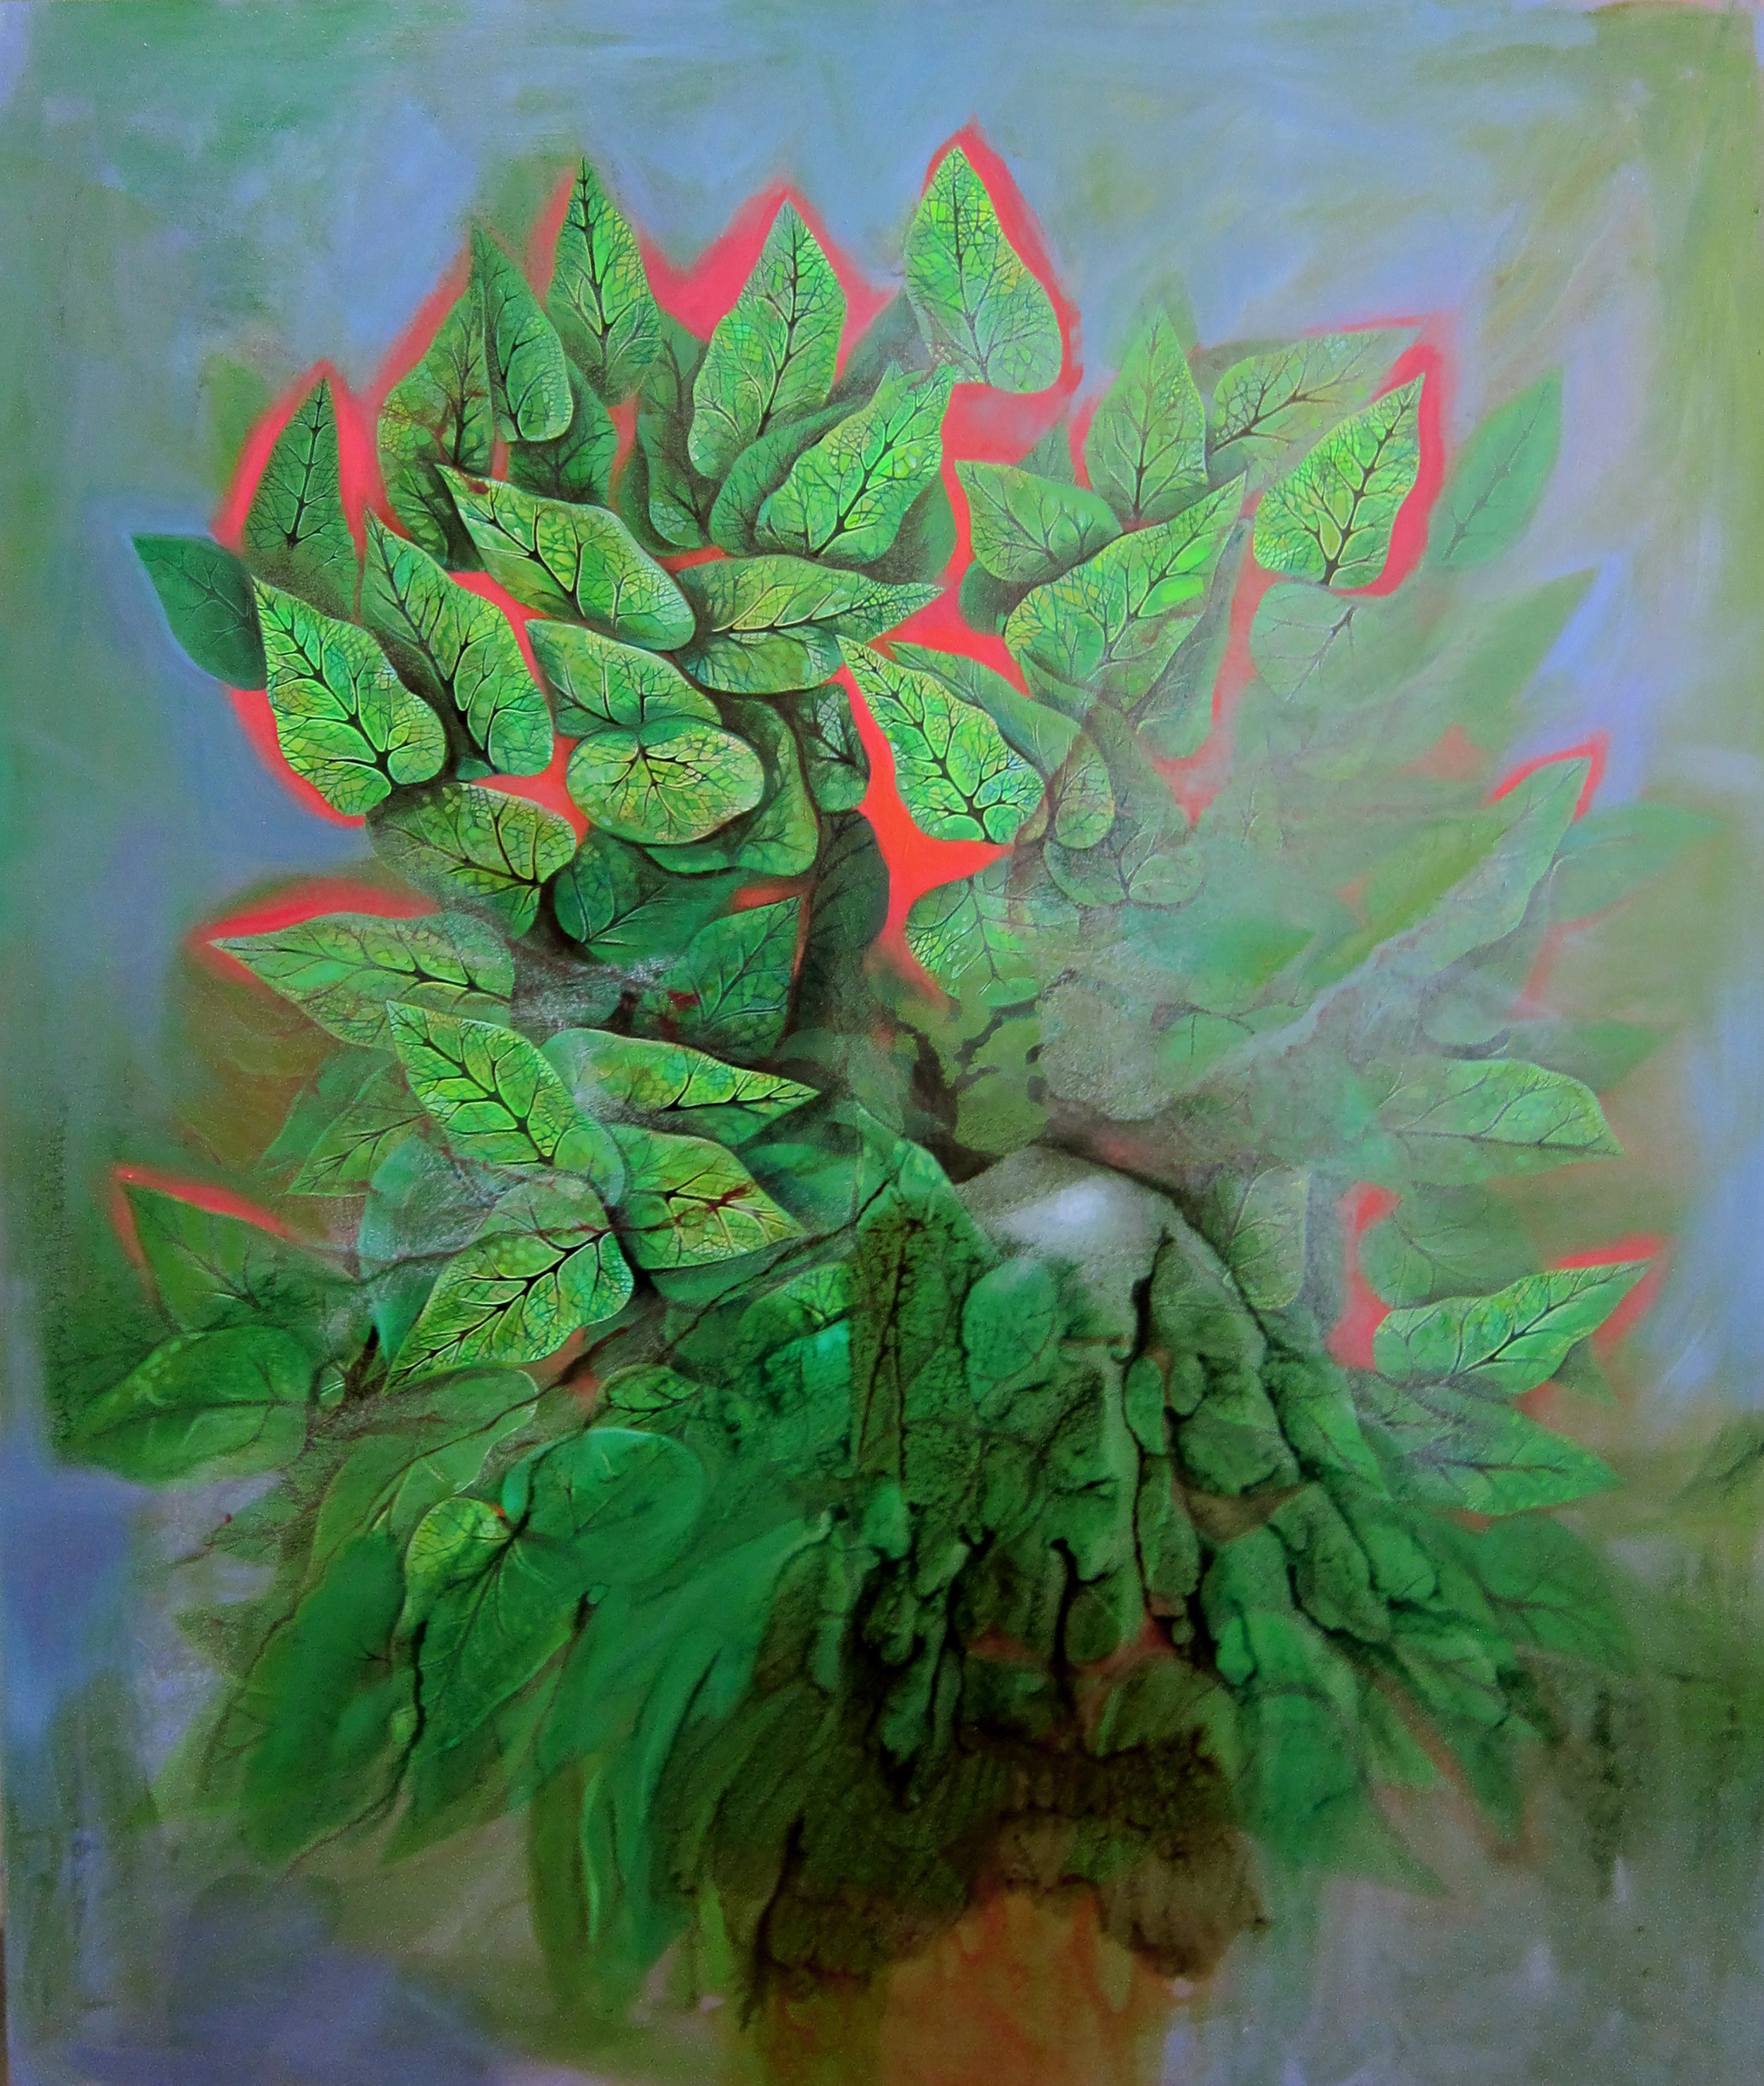 Jennifer Coates,  Large Houseplant , 2017, acrylic on canvas, 72x60 in. Courtesy of the artist and Freight and Volume Gallery